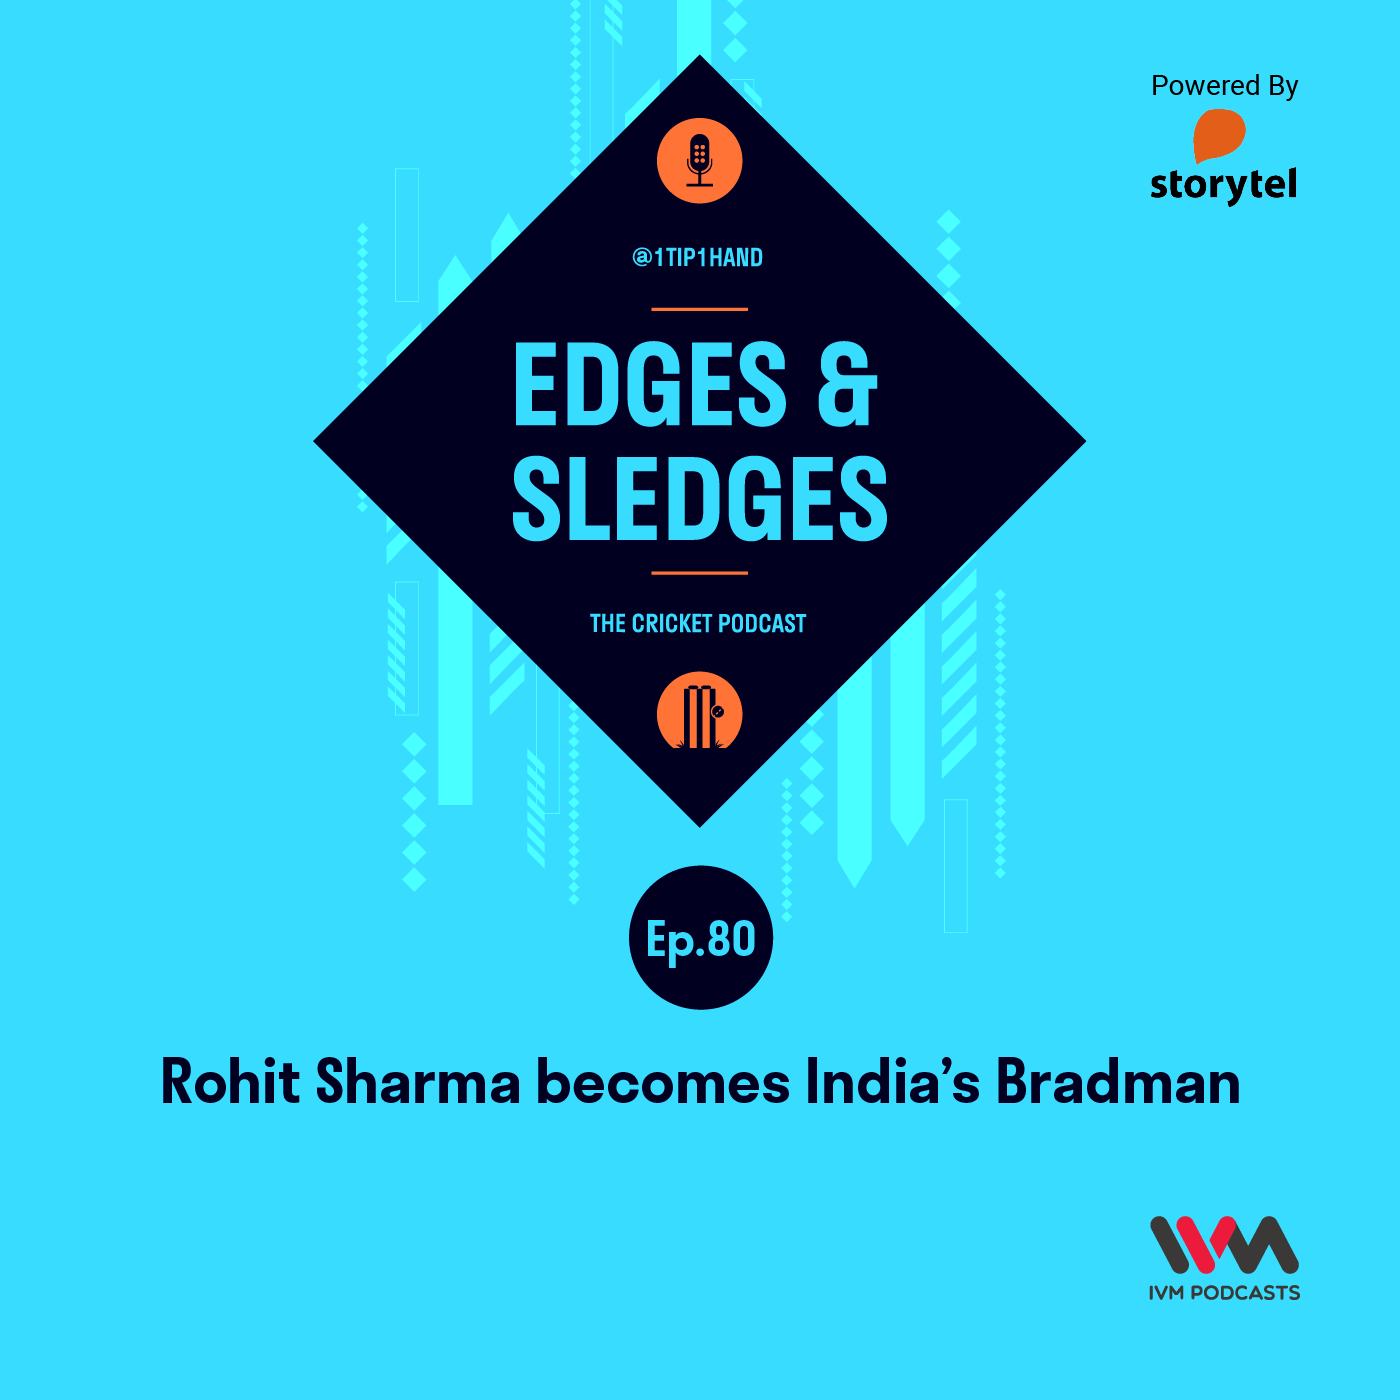 Ep. 80: Rohit Sharma becomes India's Bradman